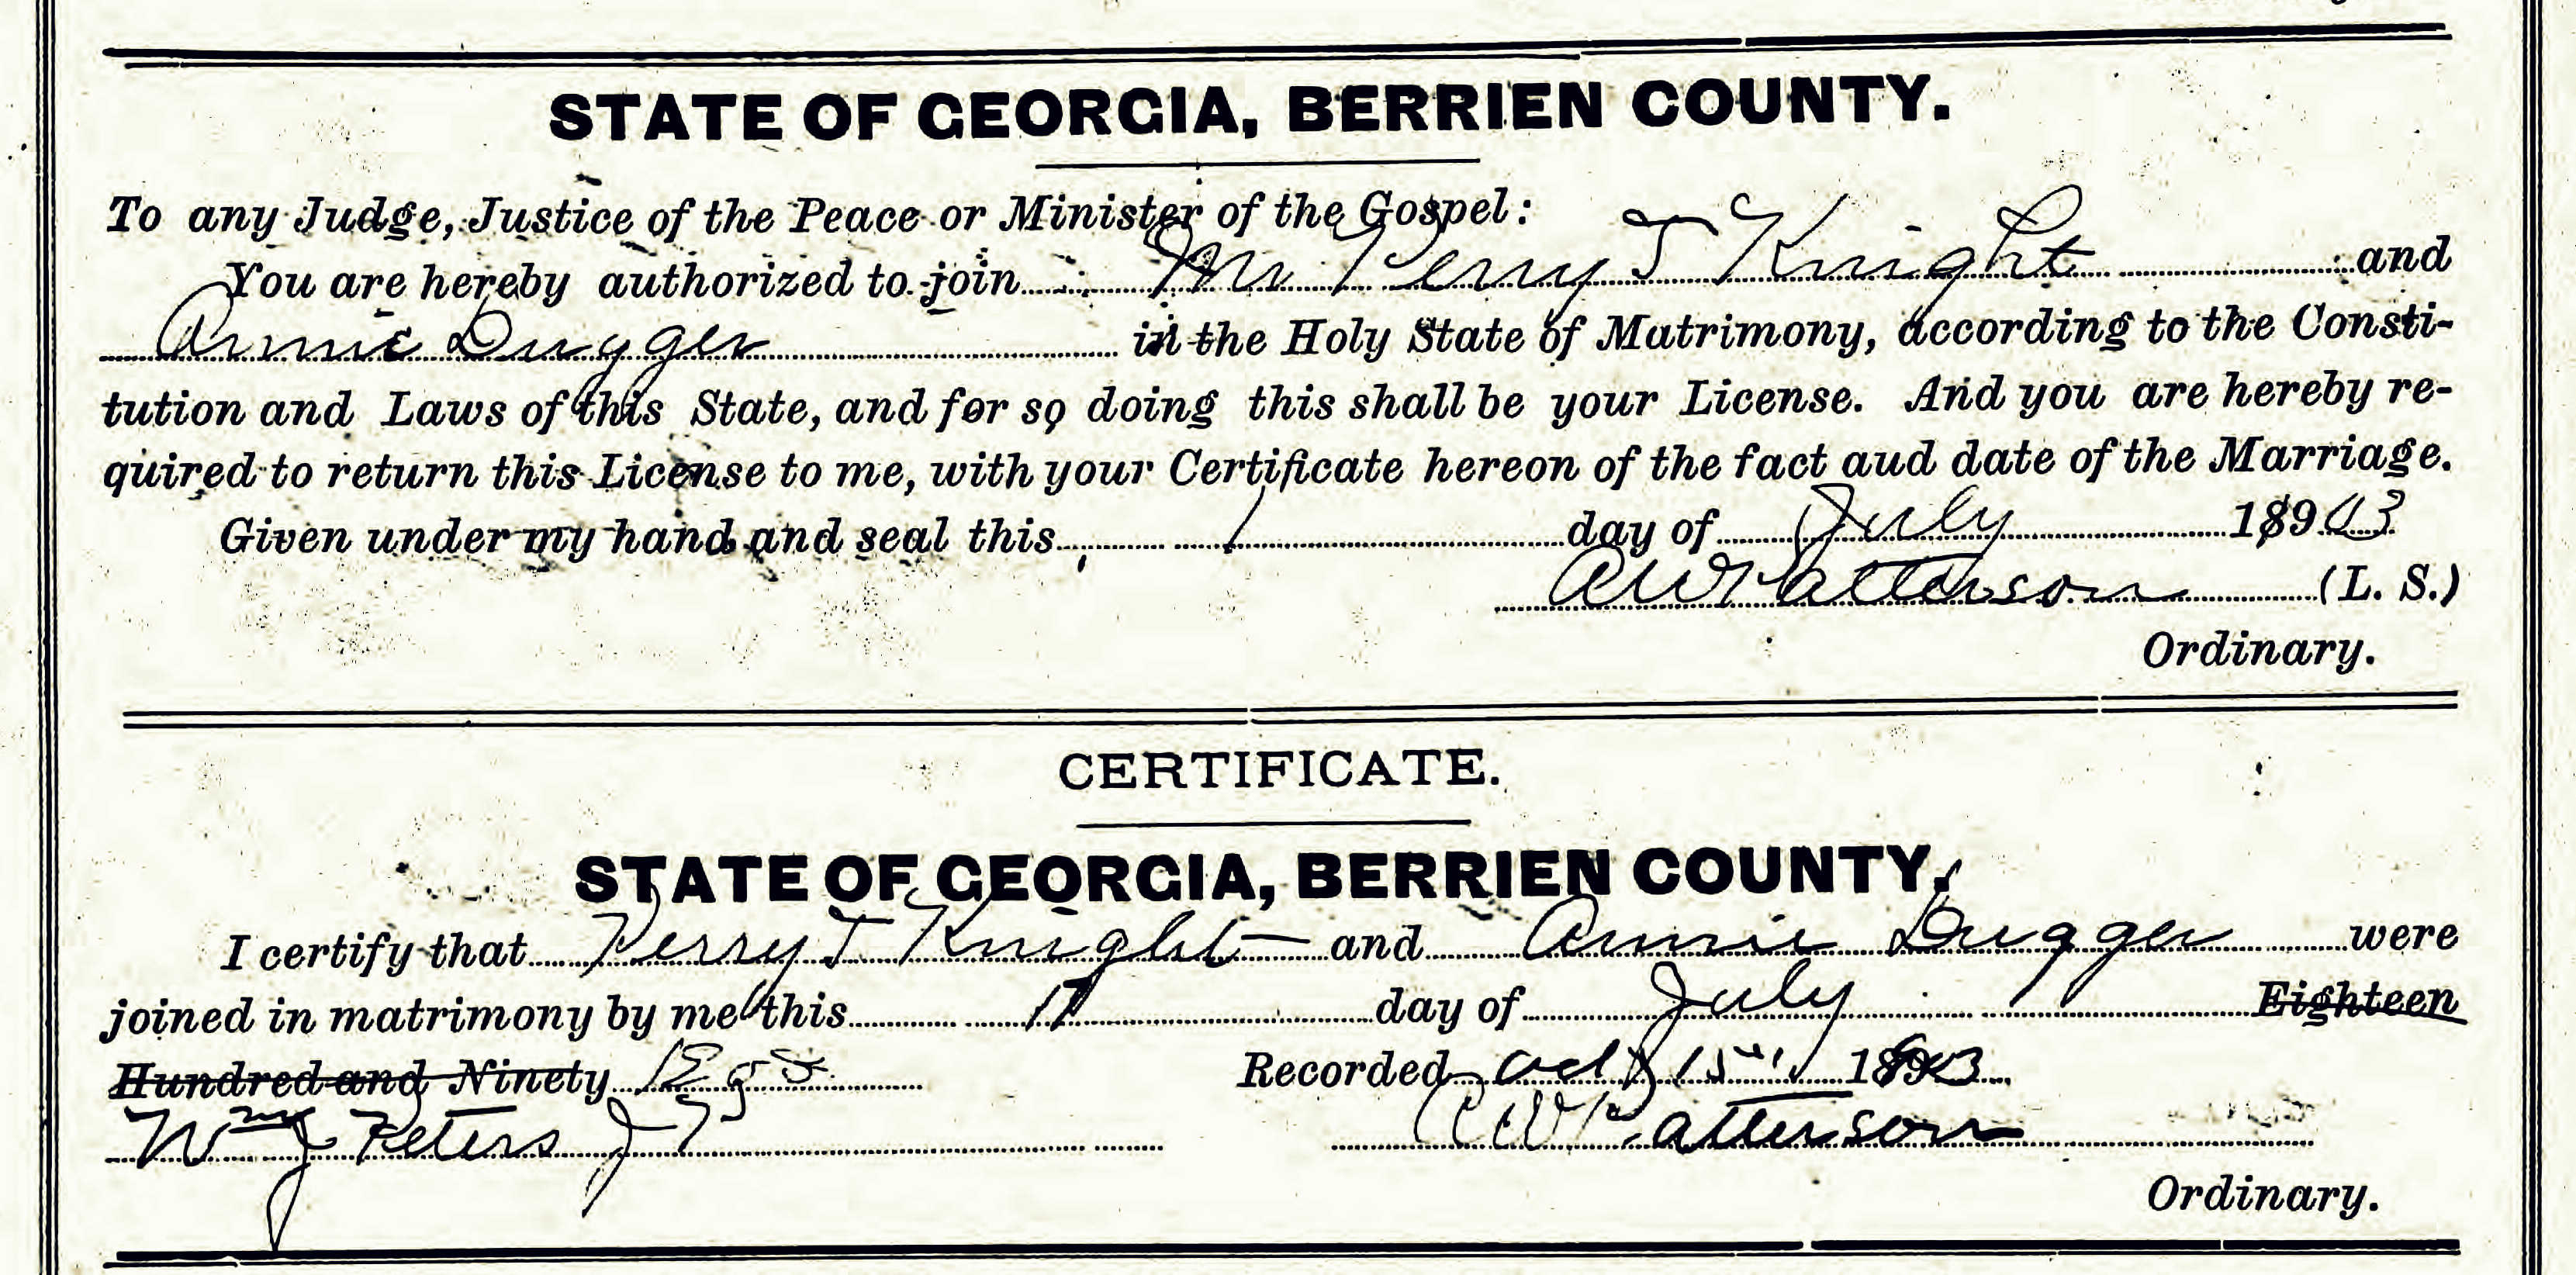 Rays mill georgia ray city history blog marriage certificate of perry thomas knight and ann dugger berrien county ga 1betcityfo Choice Image